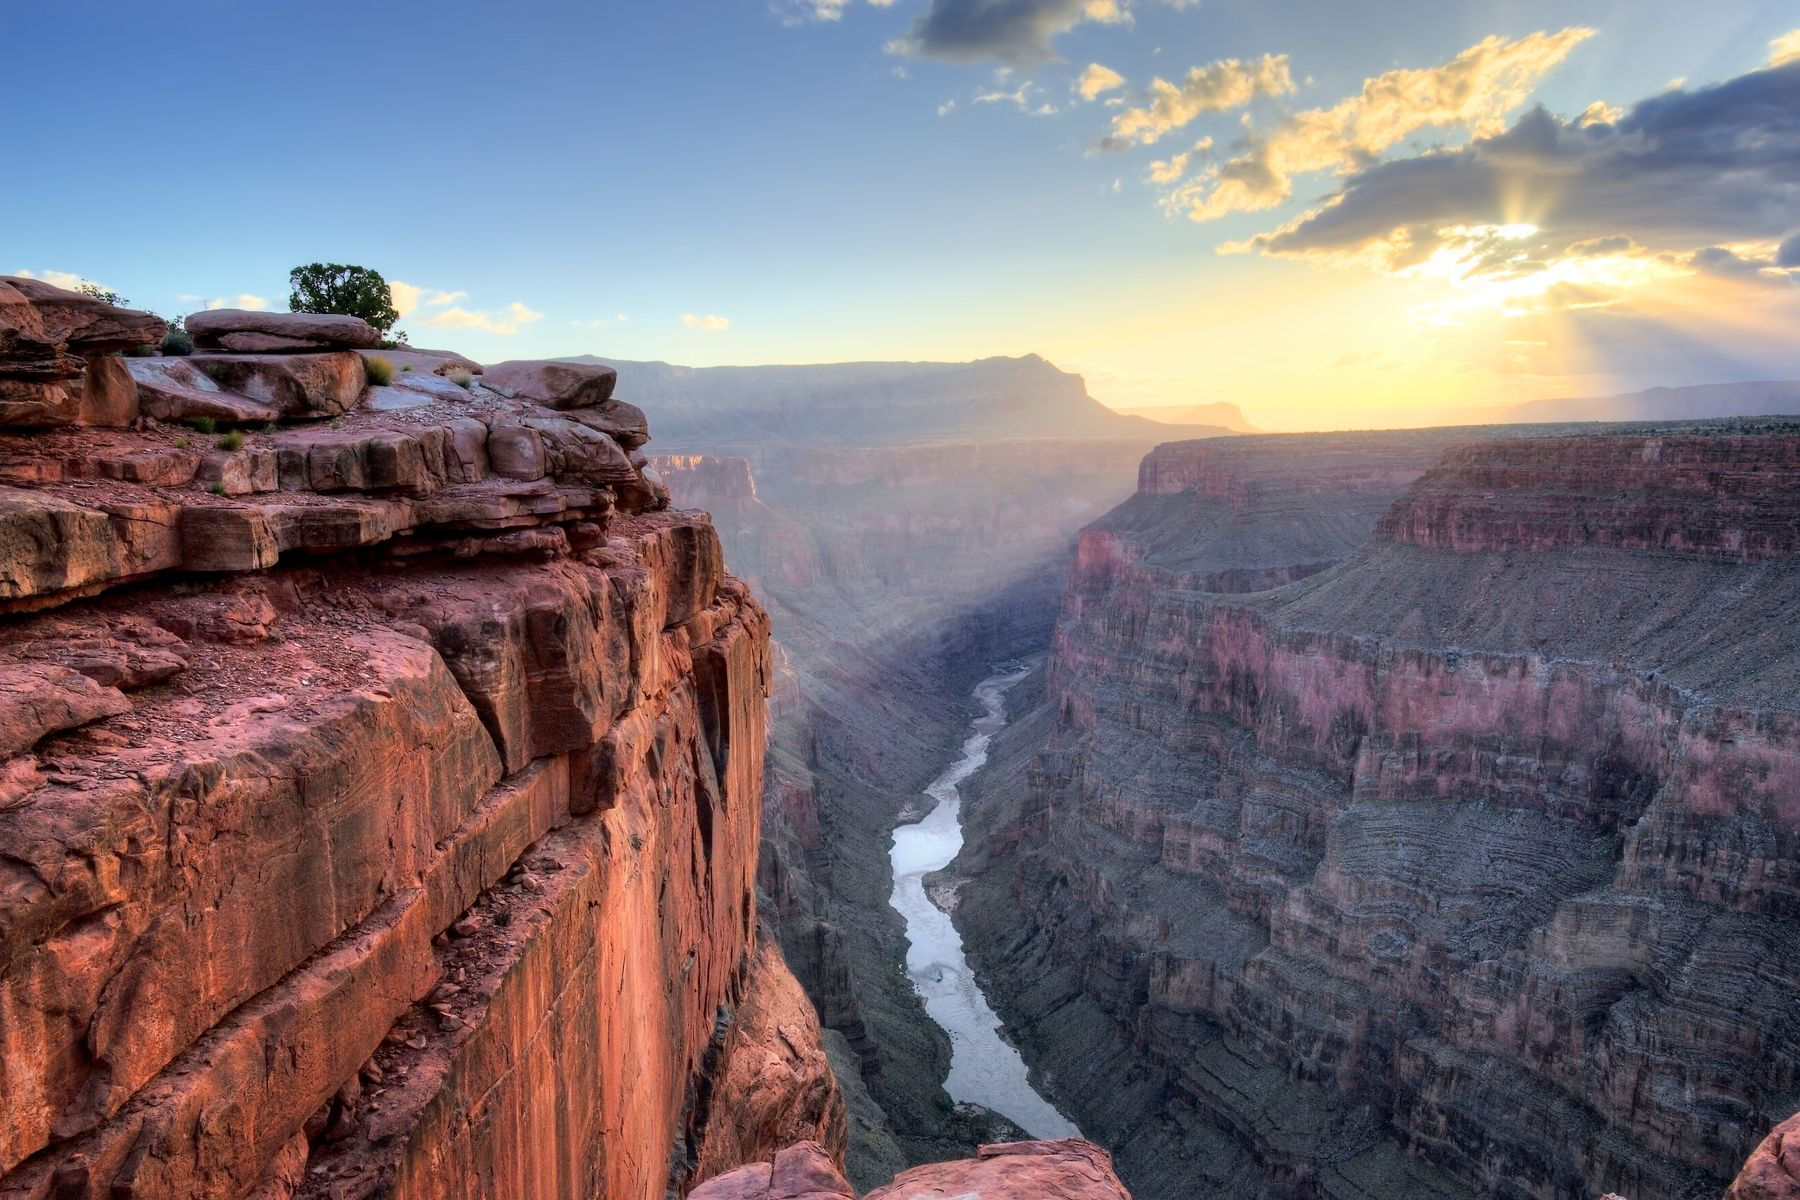 Sunset over Grand Canyon National Park